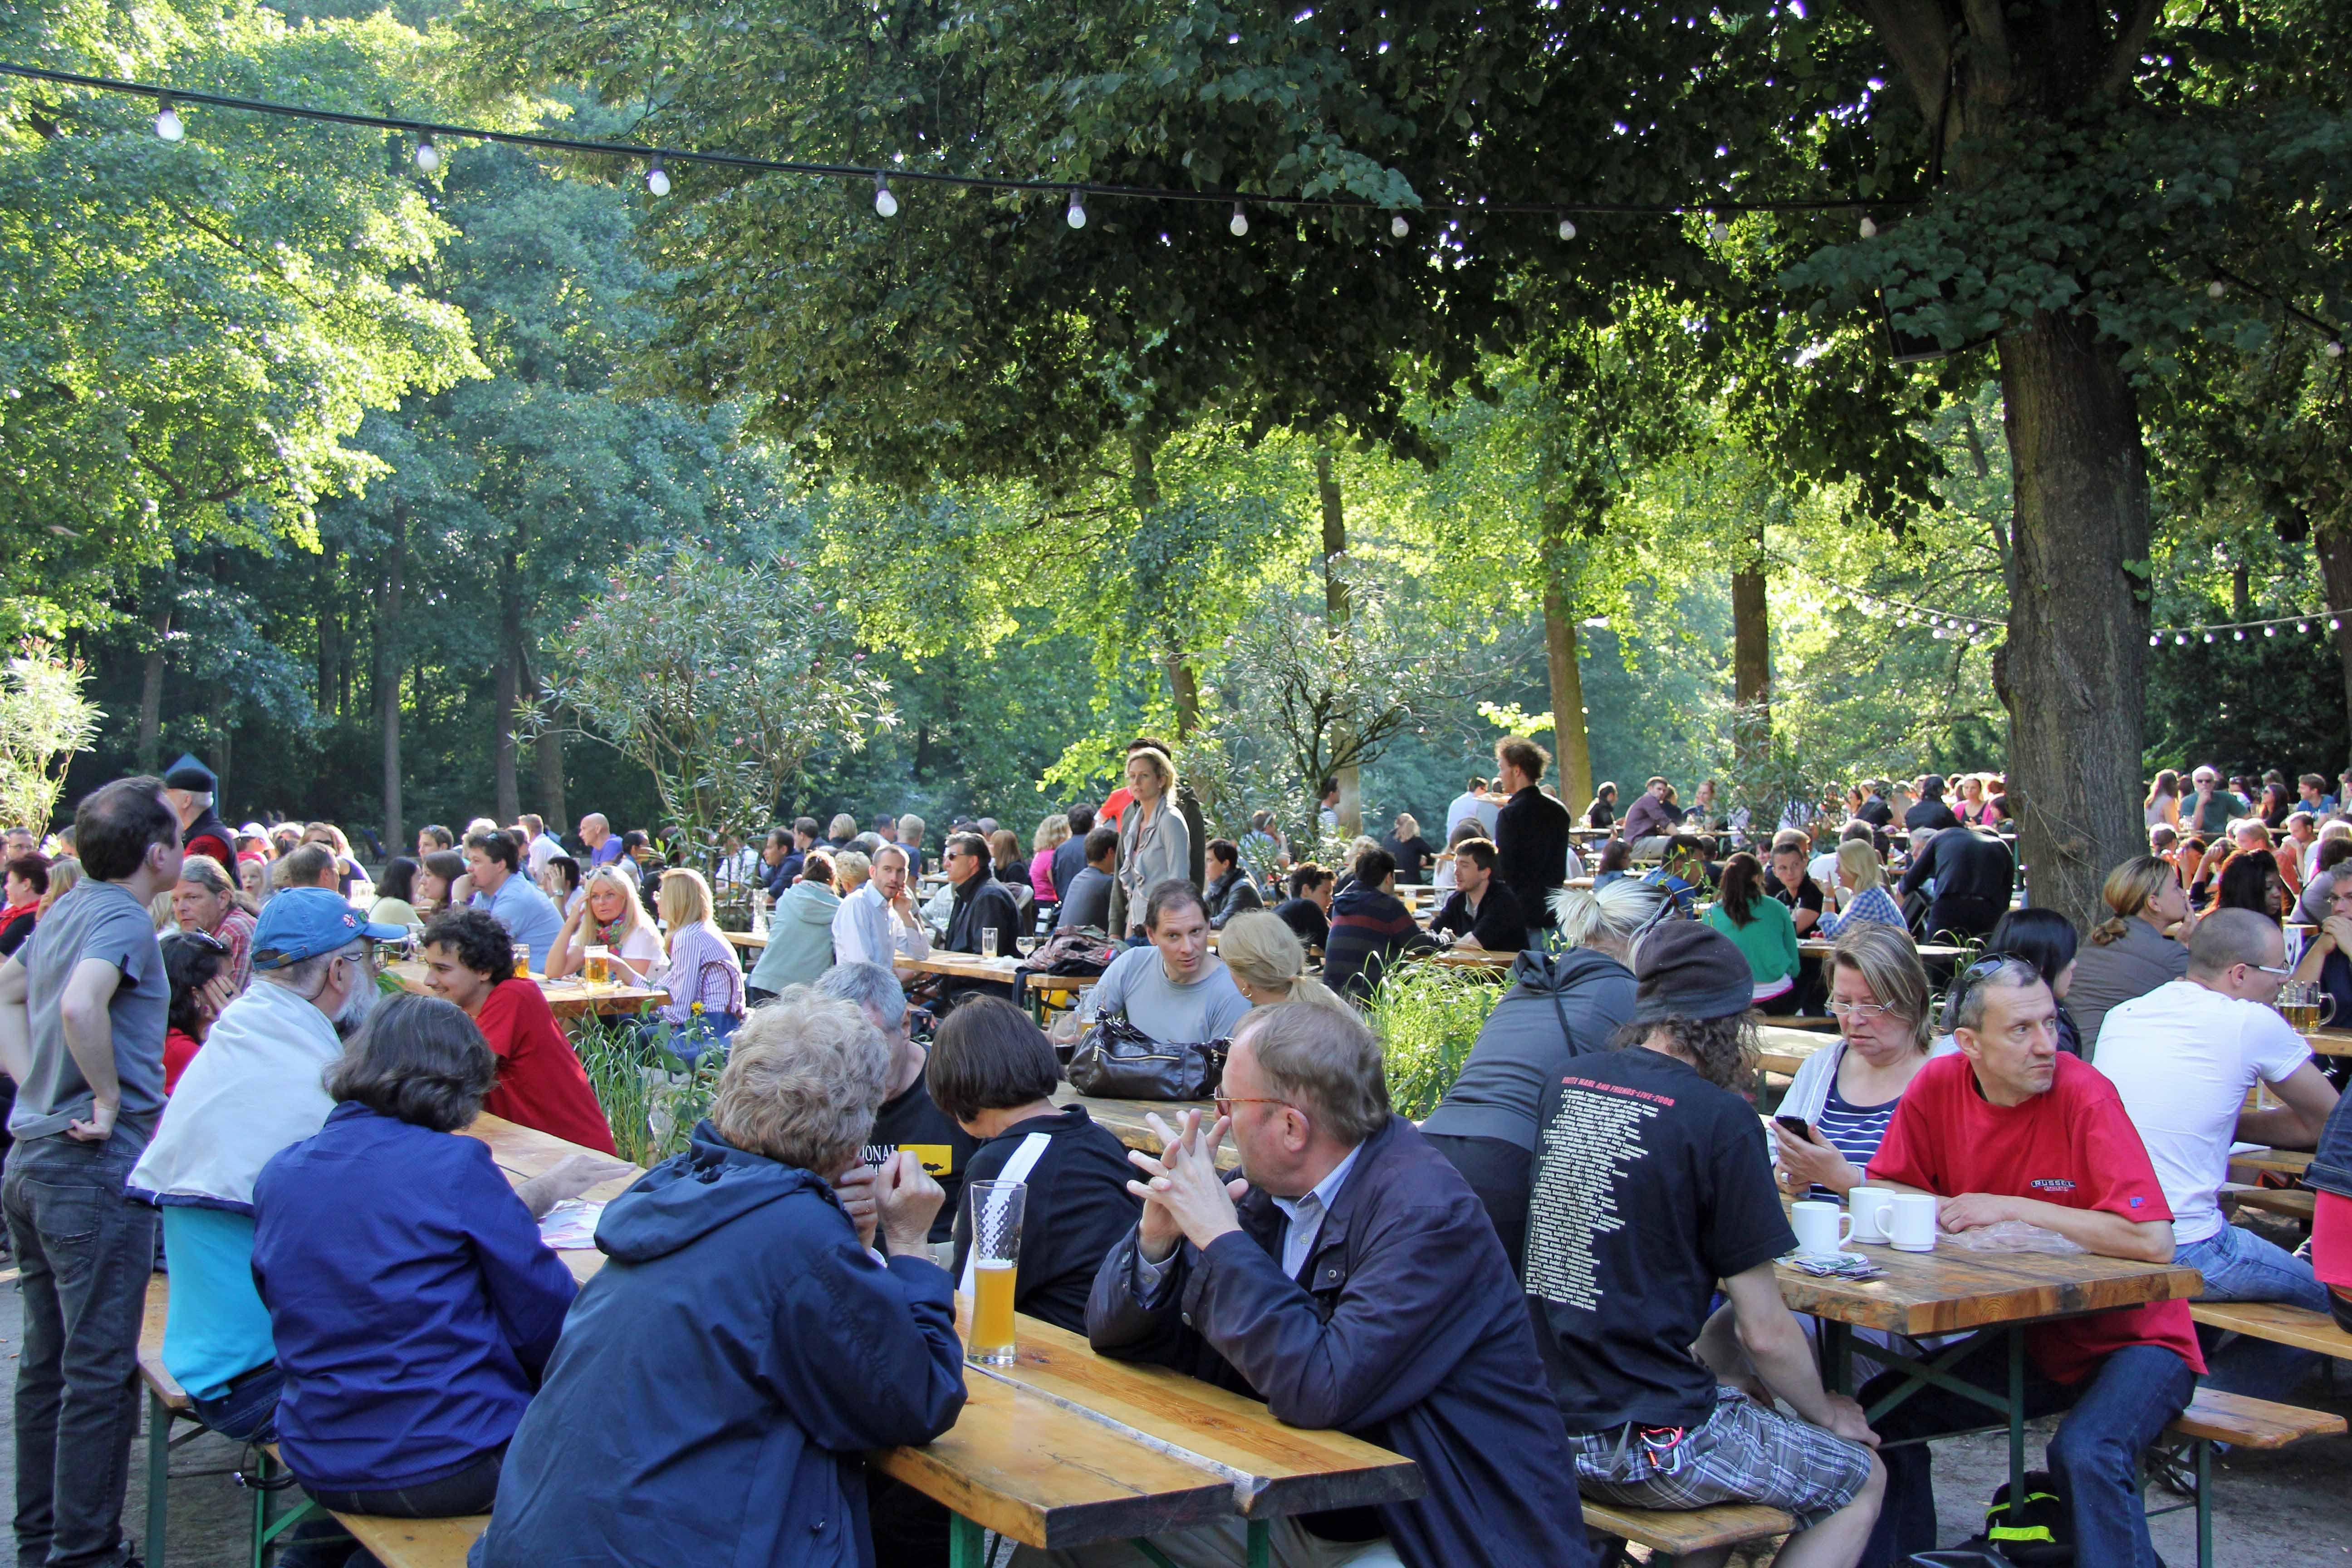 People in the Biergarten of Café am Neuen See in the Tiergarten in Berlin